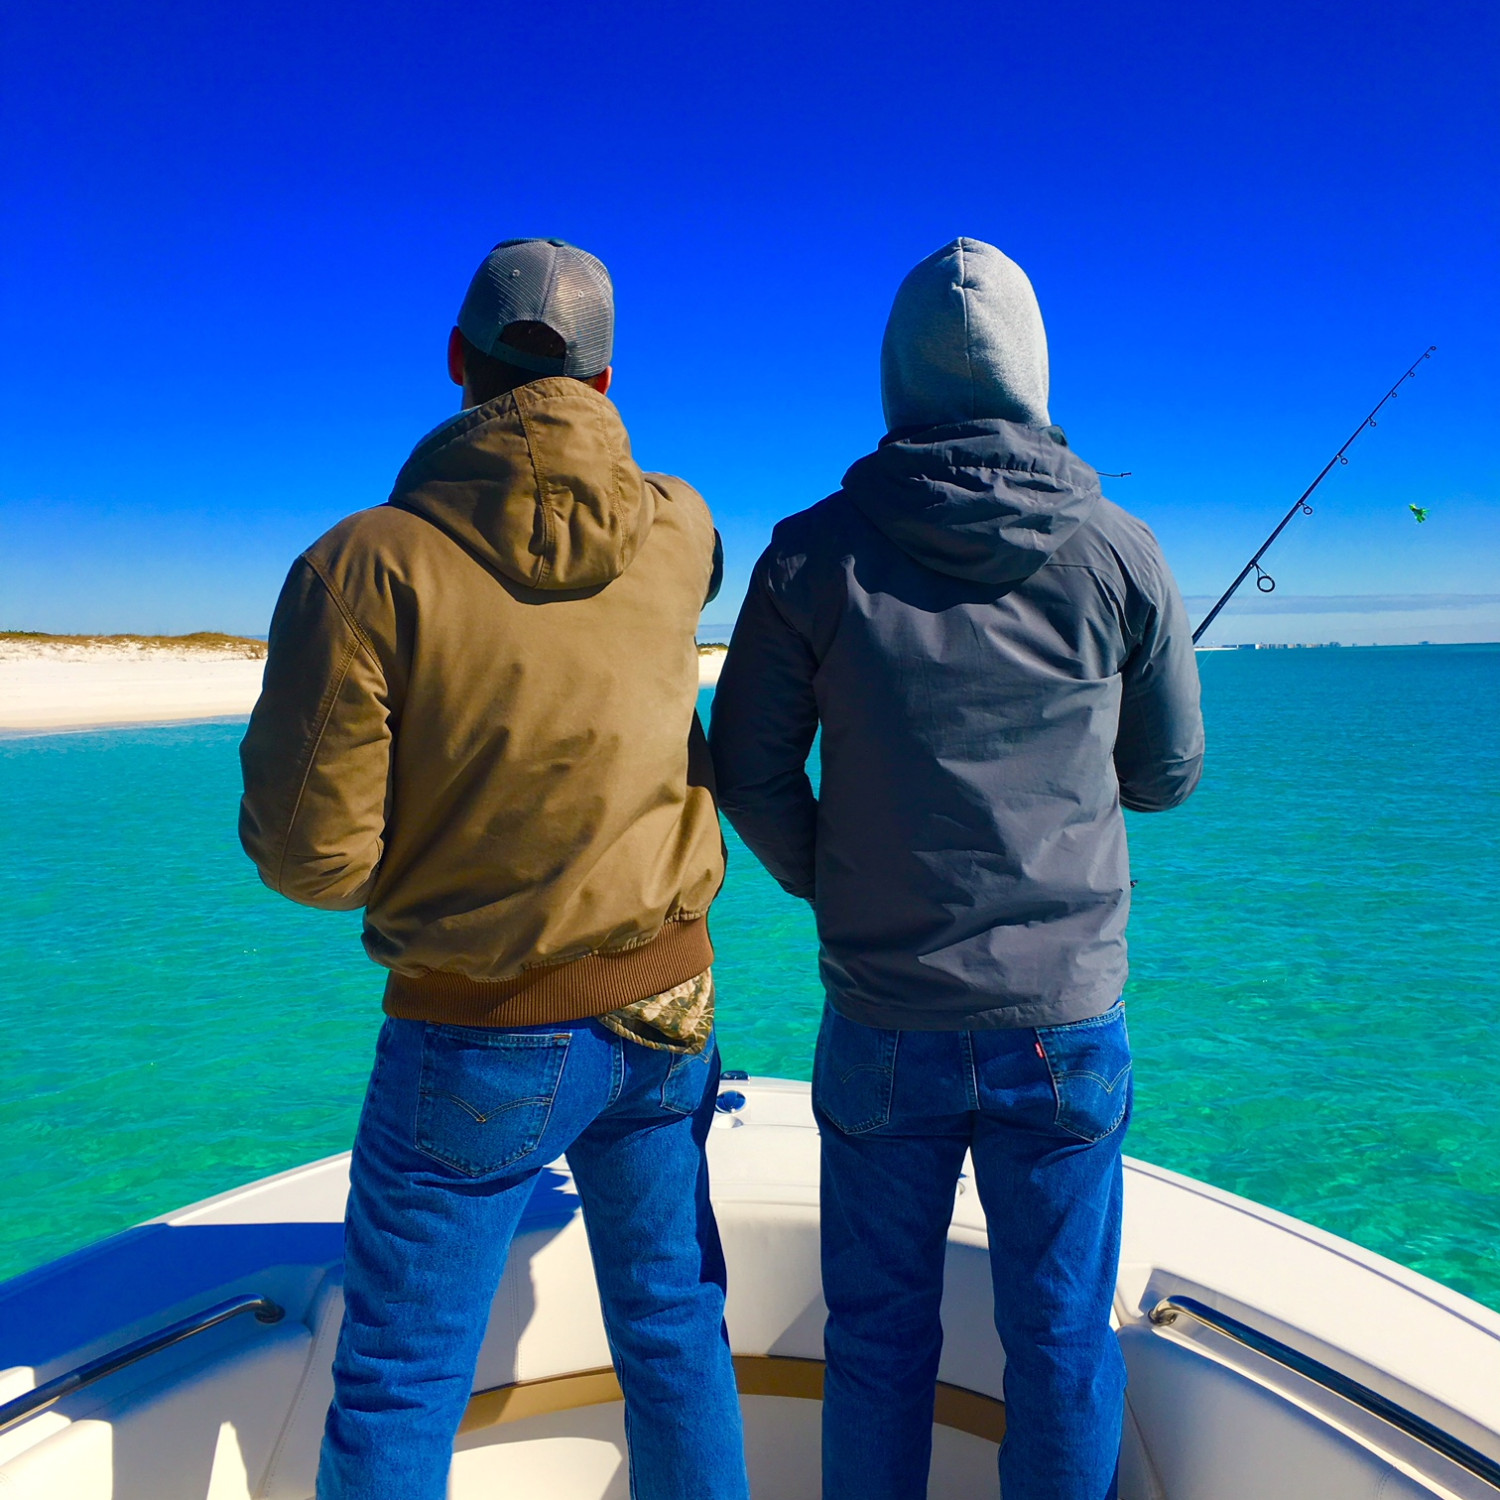 Title: Hunting Winter Redfish in Gulf just off Destin Florida - On board their Sportsman Heritage 231 Center Console - Location: Destin, FL. Participating in the Photo Contest #SportsmanFebruary2018